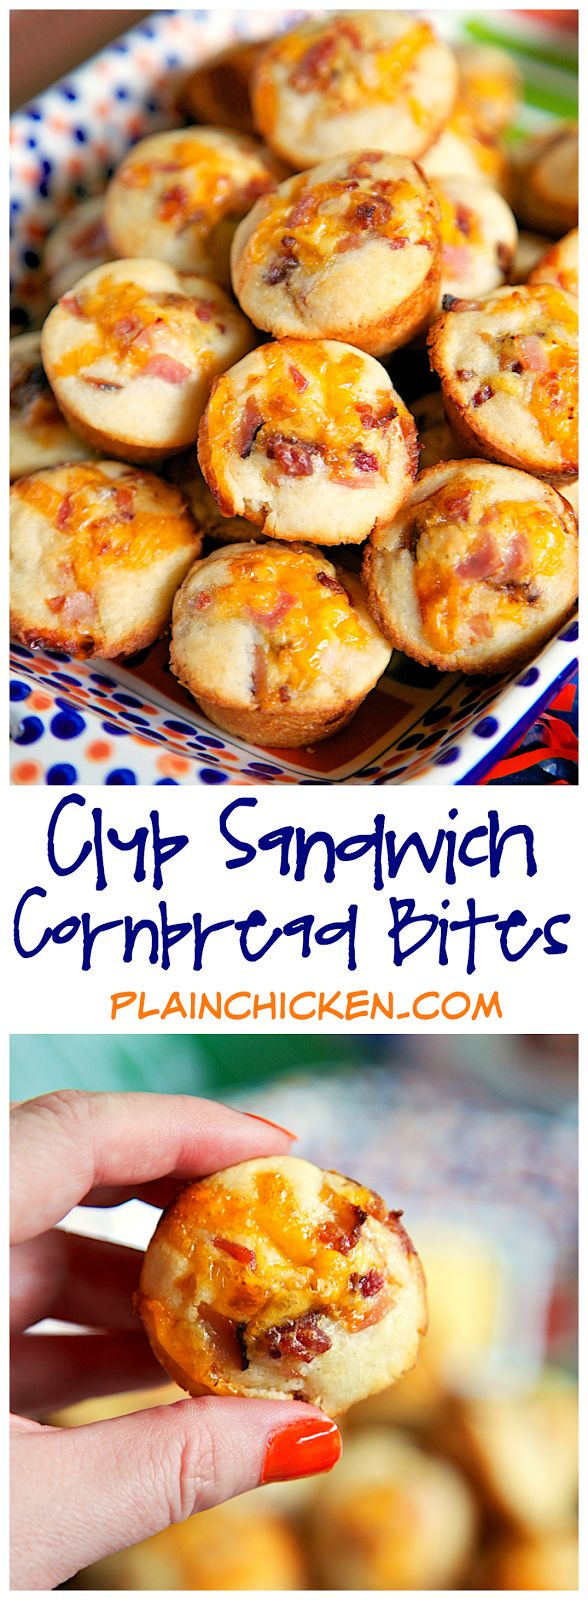 Club Sandwich Cornbread Bites Recipe - Martha White Cornbread mix topped with a ham, turkey, bacon, cheese and honey mustard mixture baked in mini muffin pans. Serve with additional honey mustard. GREAT for tailgating, brunch, baby showers or any other type of party. We've also eaten these for lunch and dinner. Ready in under 15 minutes!